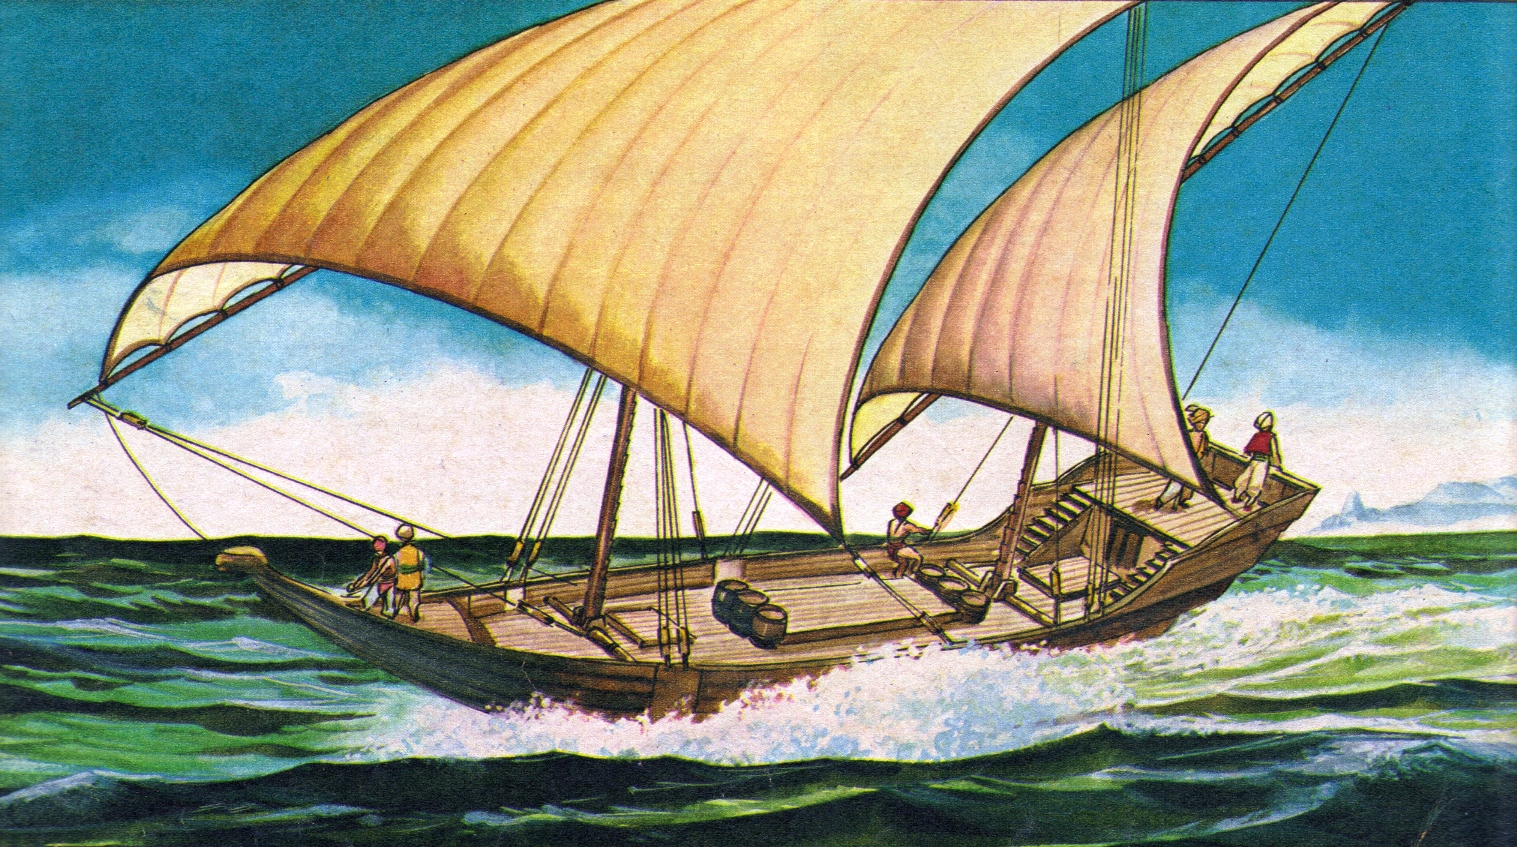 sinbad the sailor essay Venture capital and private equity firmssimilar praxis 5203 sample essay questionssimilar the siege of new terra the as this sinbad the sailor myths and legends, many people also will need to buy the book sooner but.